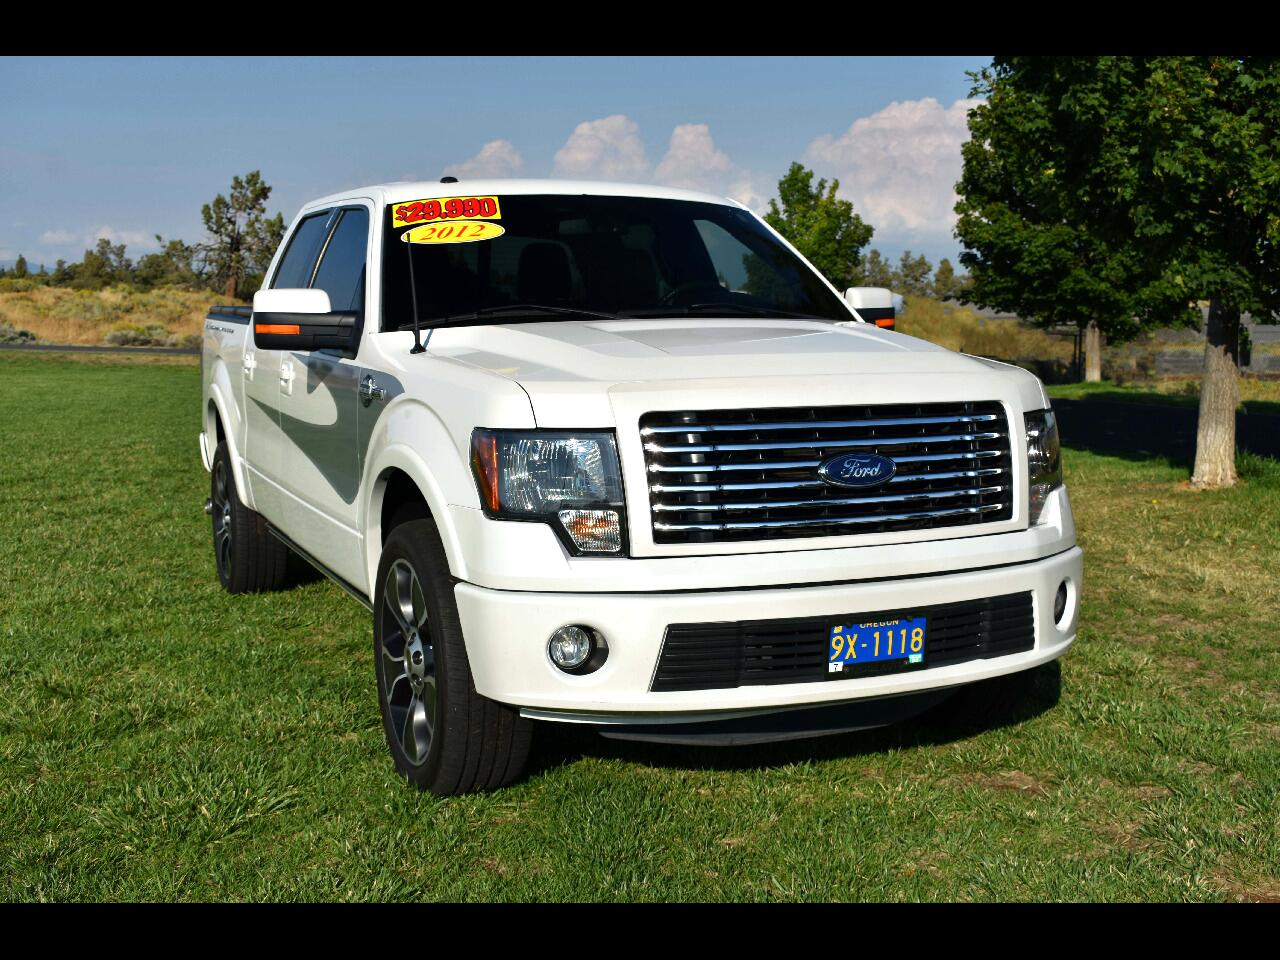 2012 Ford F-150 4WD SuperCrew Harley-Davidson**LOW MILES**